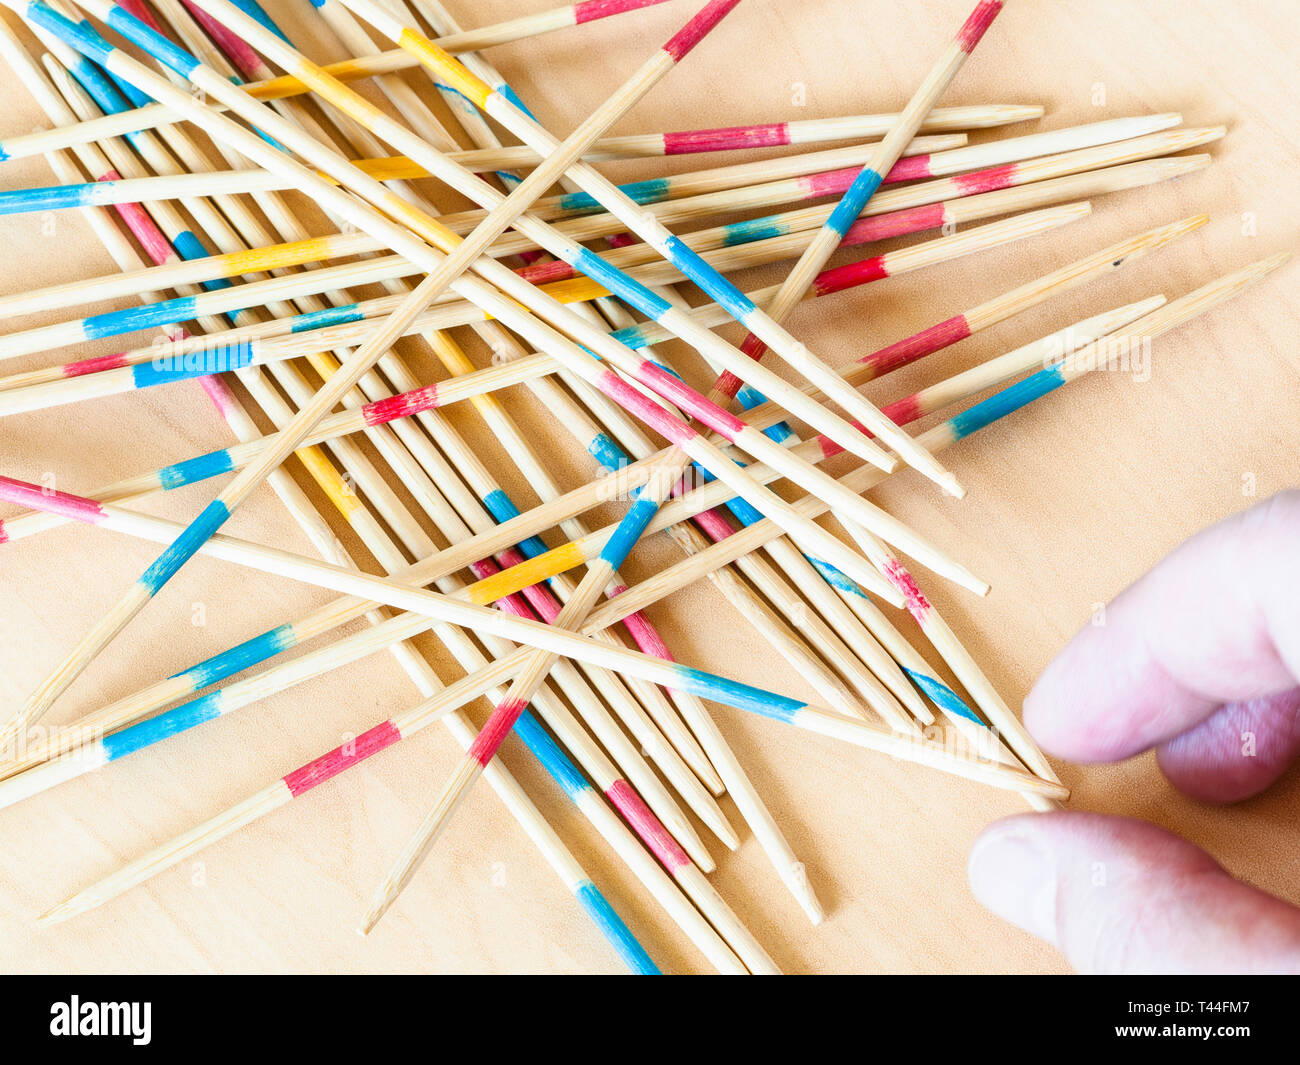 player picks up a stick from pile in Mikado game close up on wood board - Stock Image